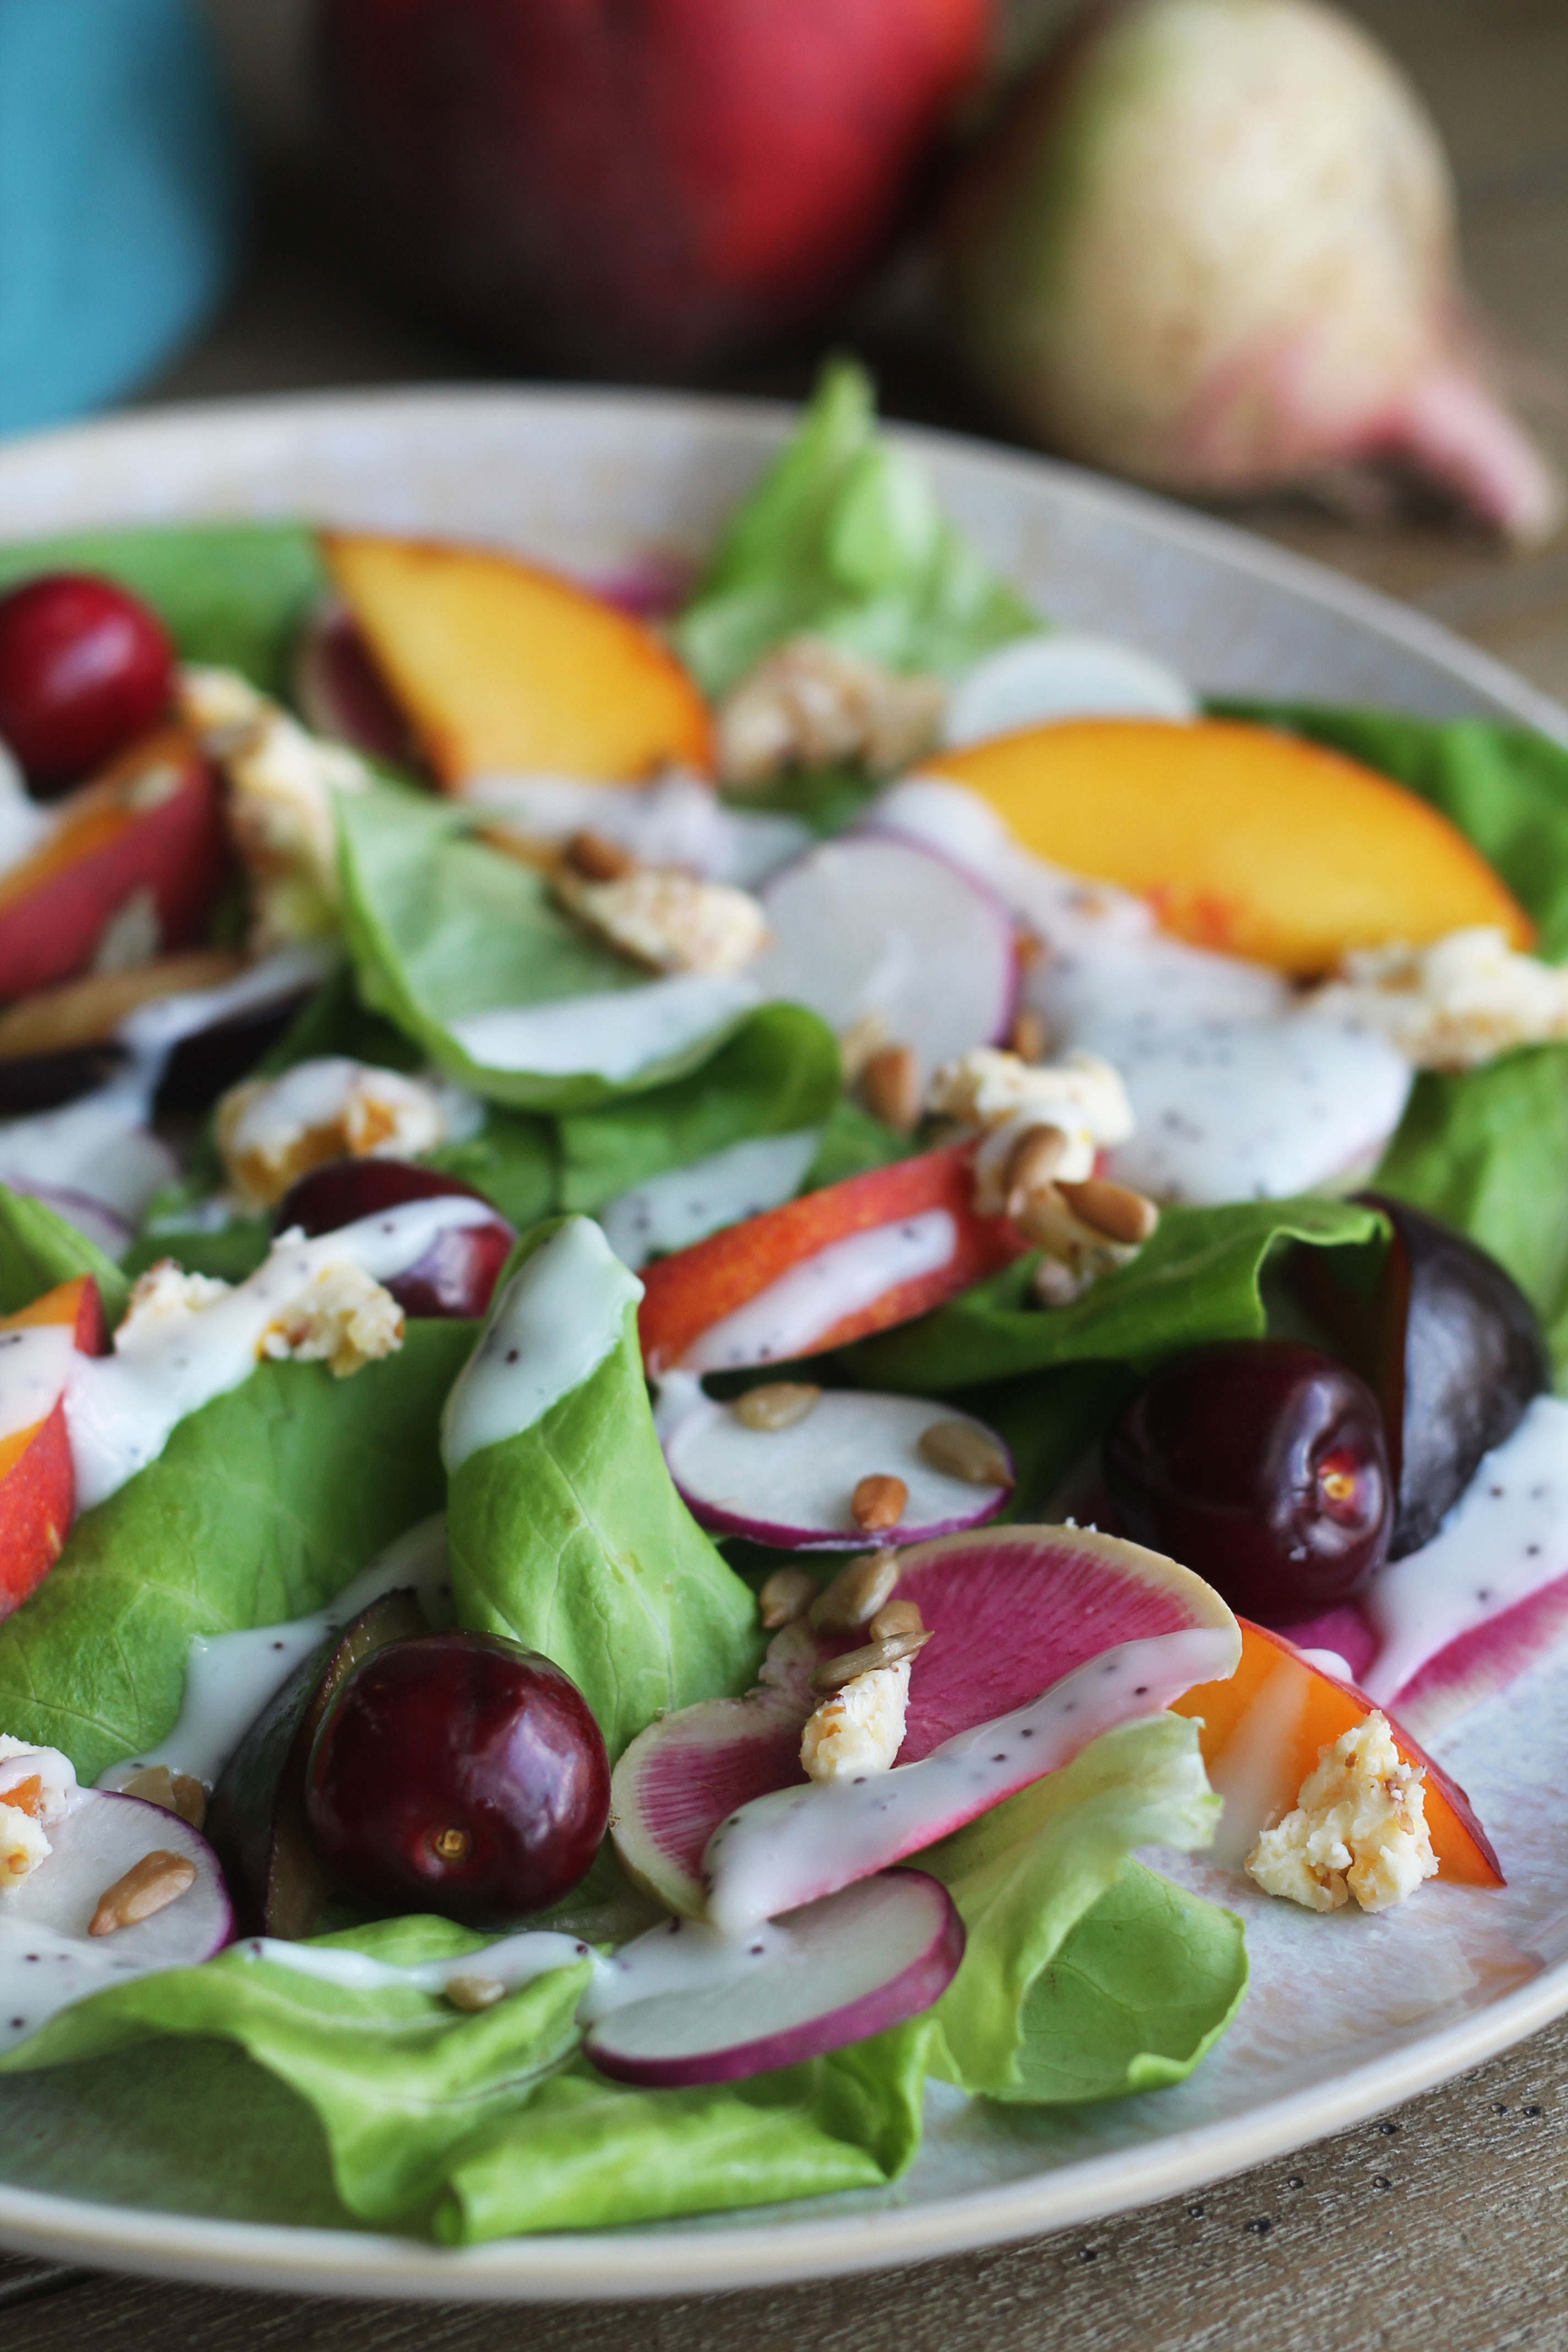 This summer salad combines all the sweet and tart stone fruits with some peppery radishes